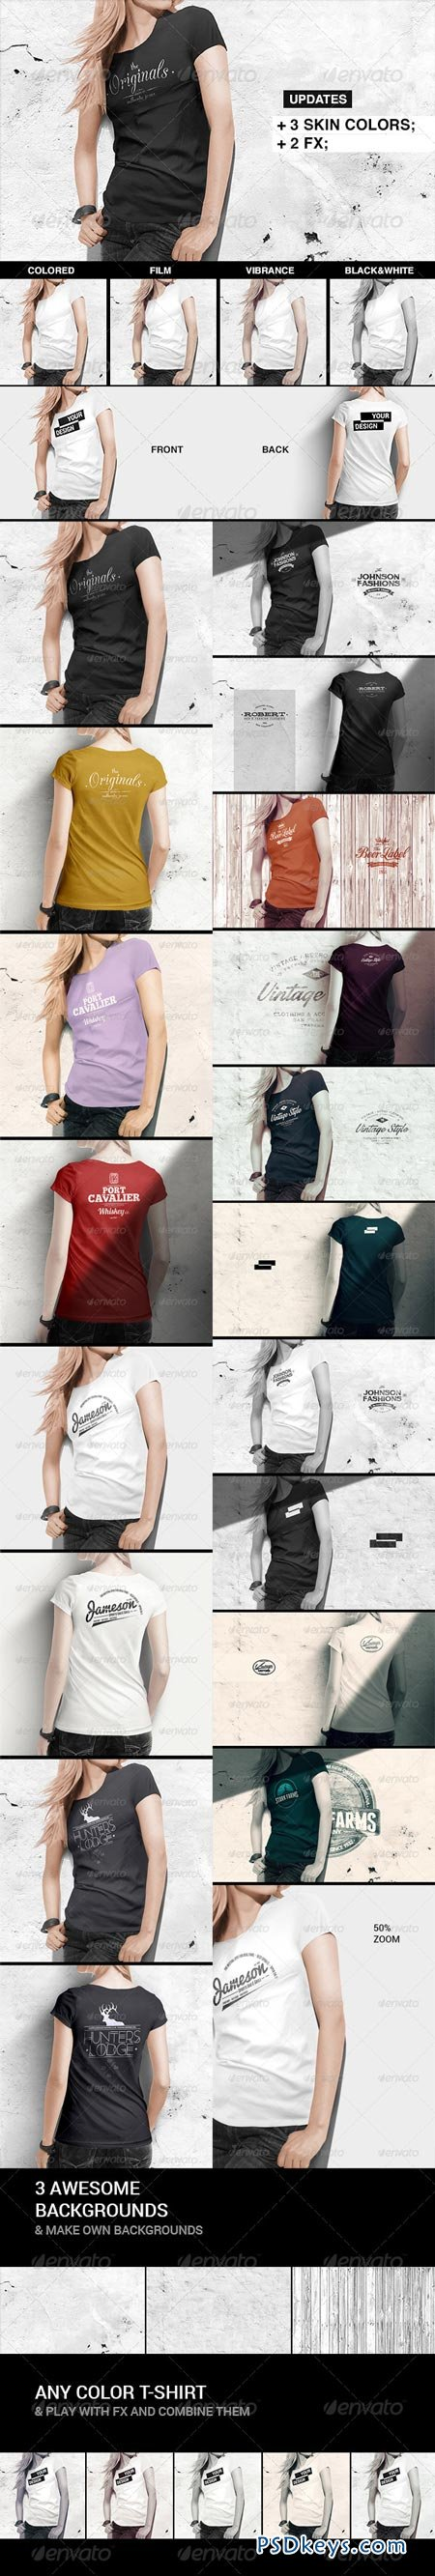 Women T-Shirt Mock-Up 8504847